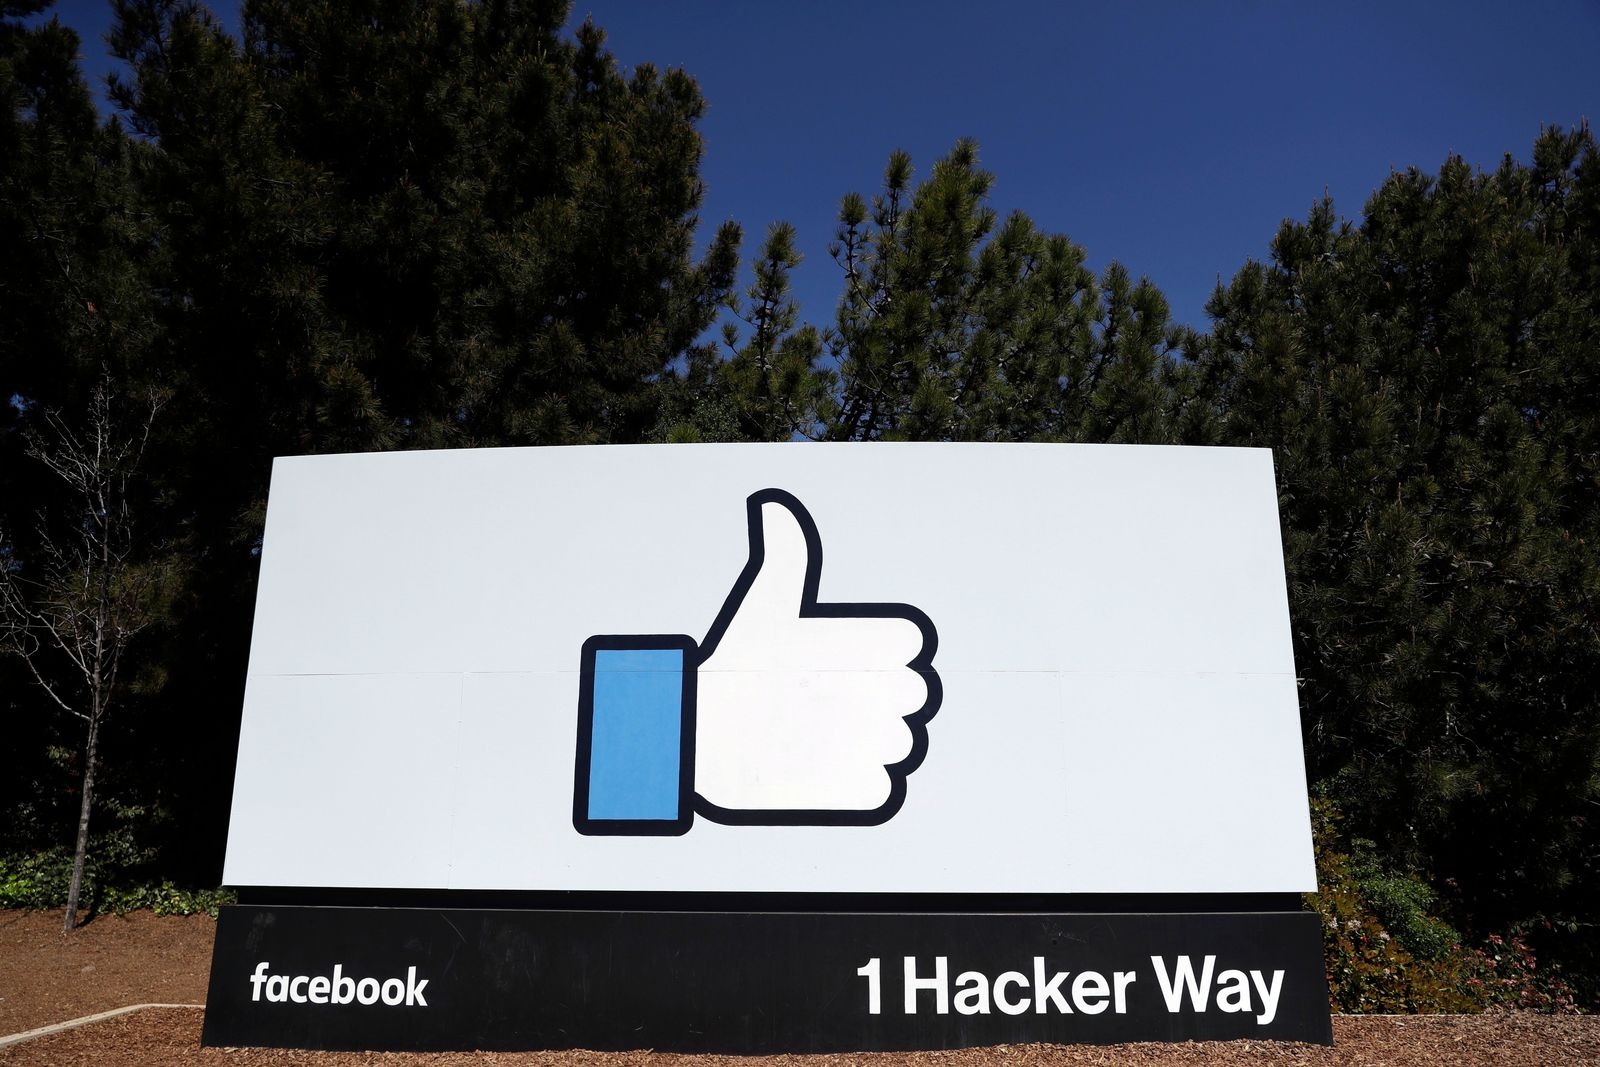 FILE- This March 28, 2018, file photo shows the Facebook logo at the company's headquarters in Menlo Park, Calif. (AP Photo/Marcio Jose Sanchez, File)